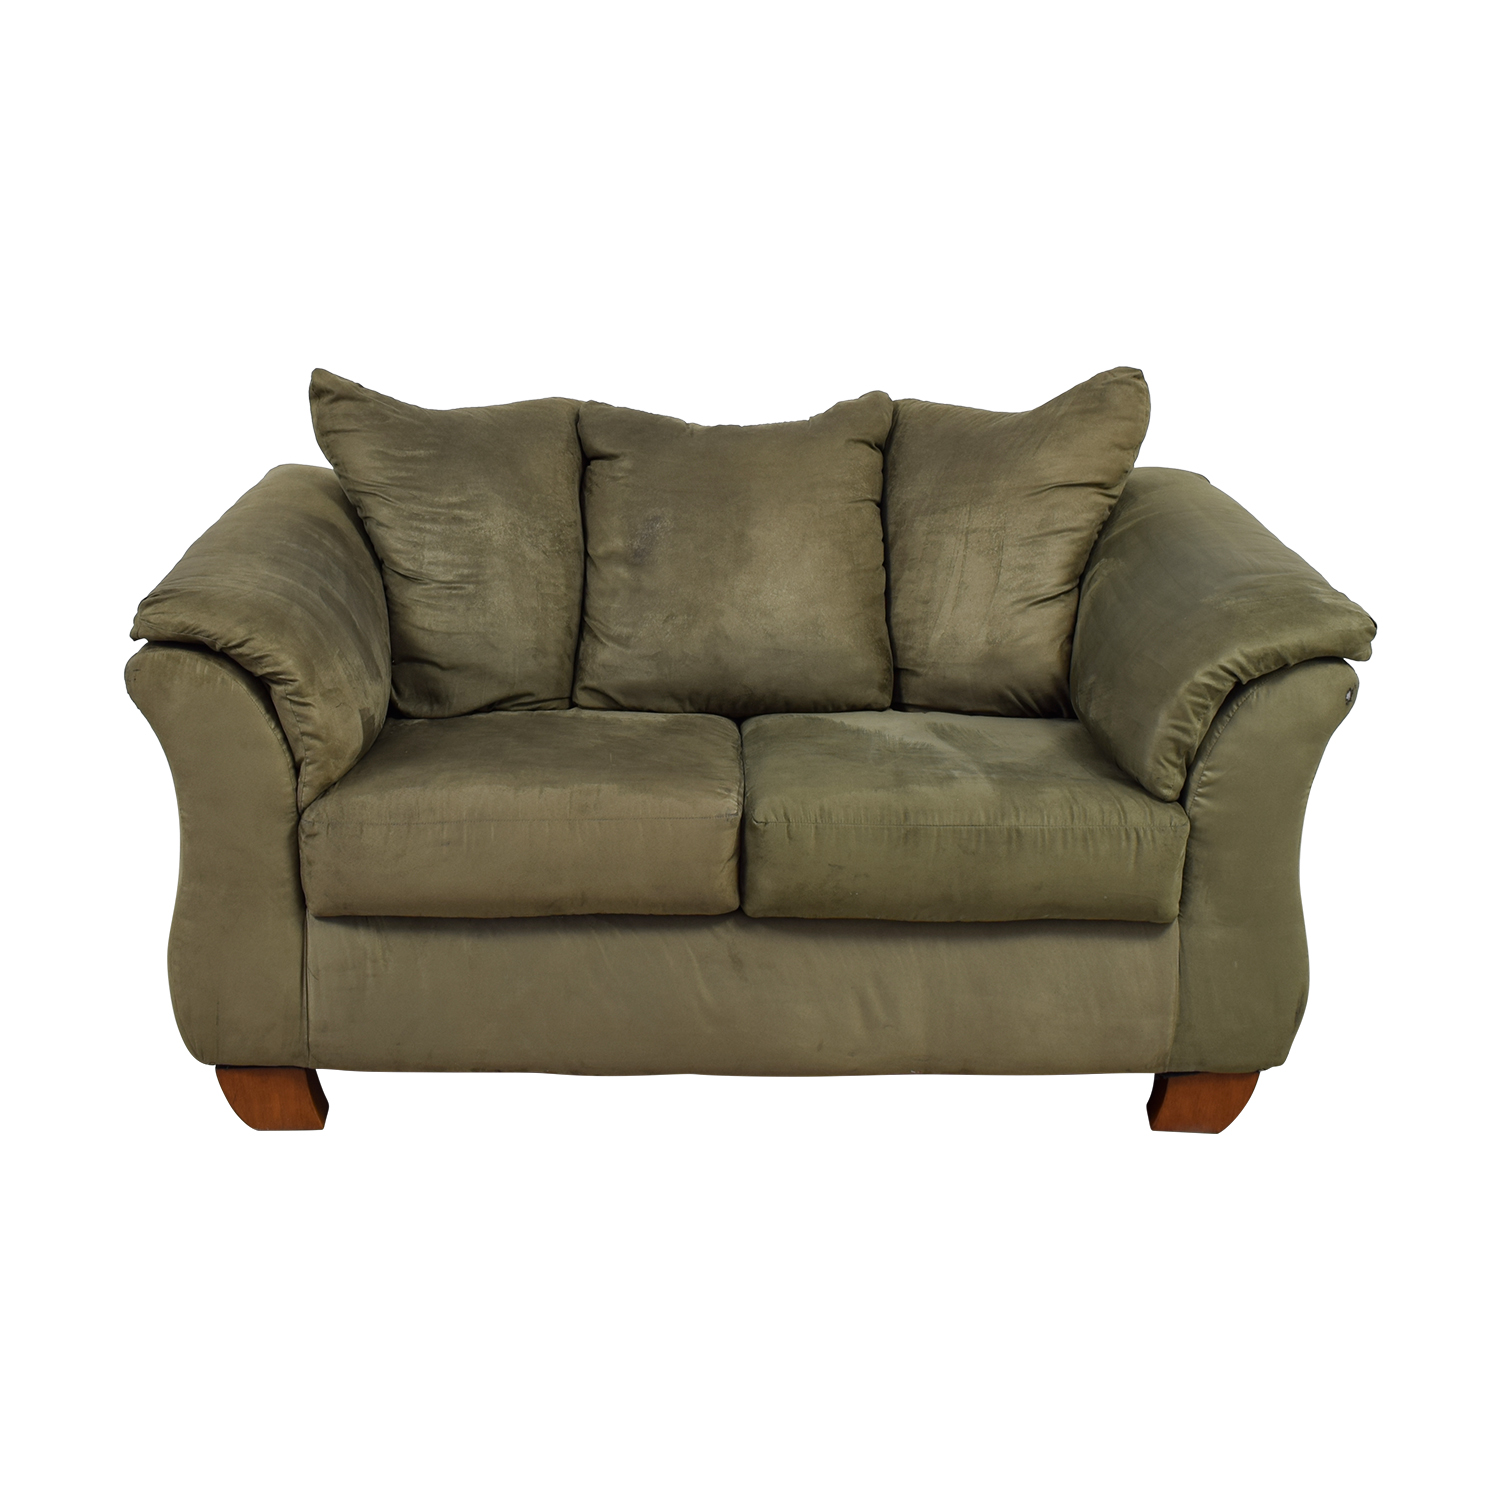 Forest Green Two-Cushion Loveseat price